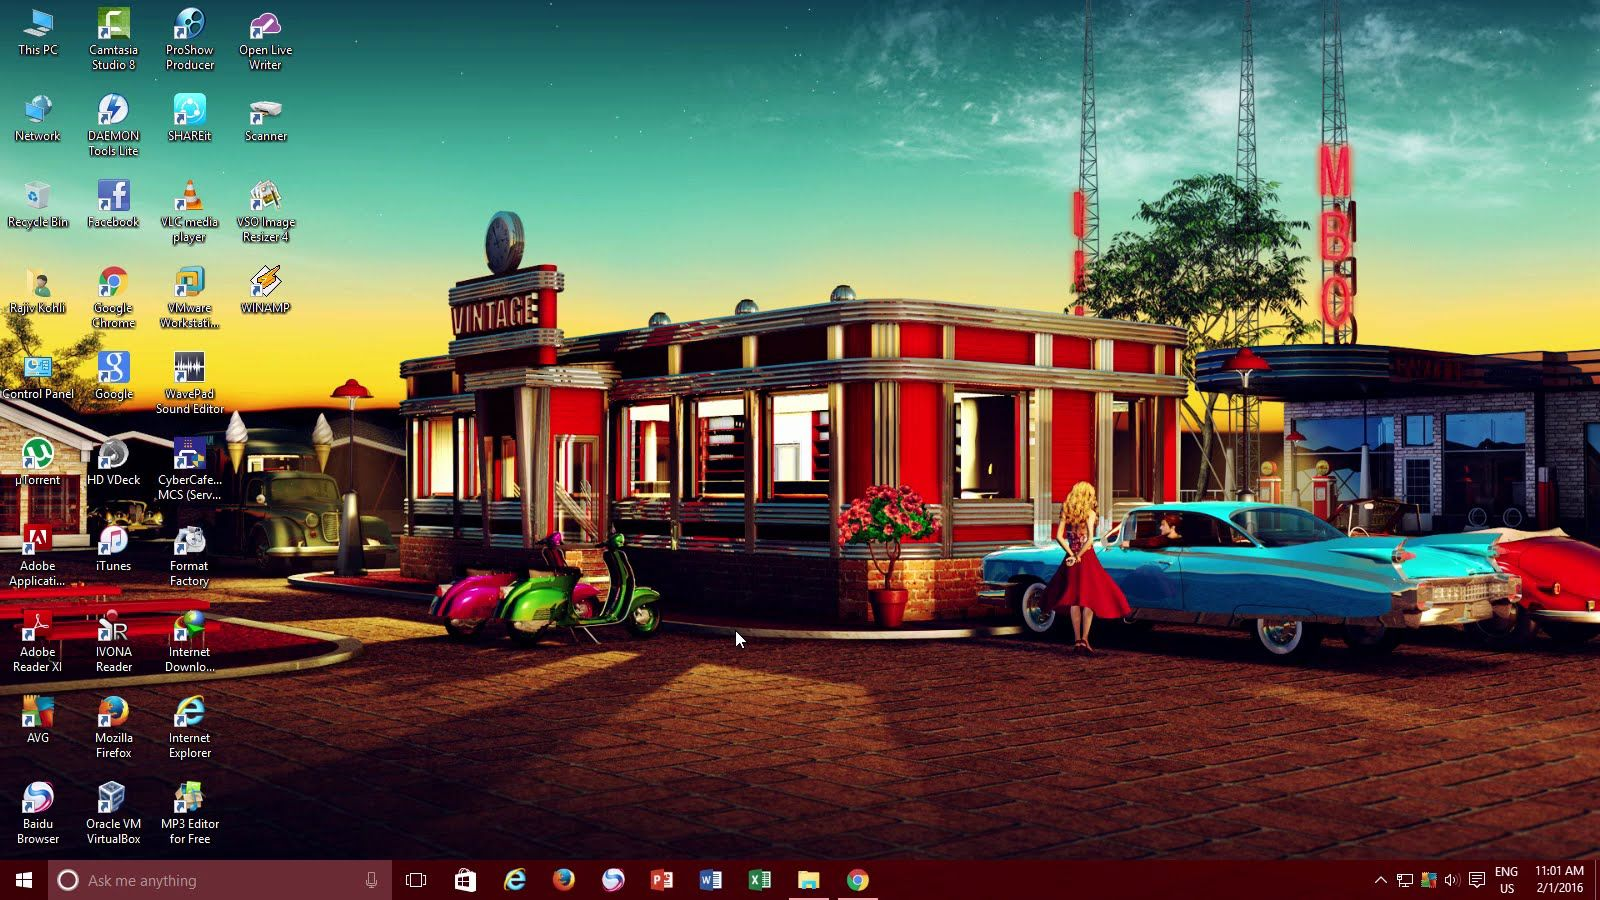 How To Have Animated Desktop Background Wallpaper Windows 10 Tutorial Retro Wallpaper Retro Diner Animated Desktop Backgrounds